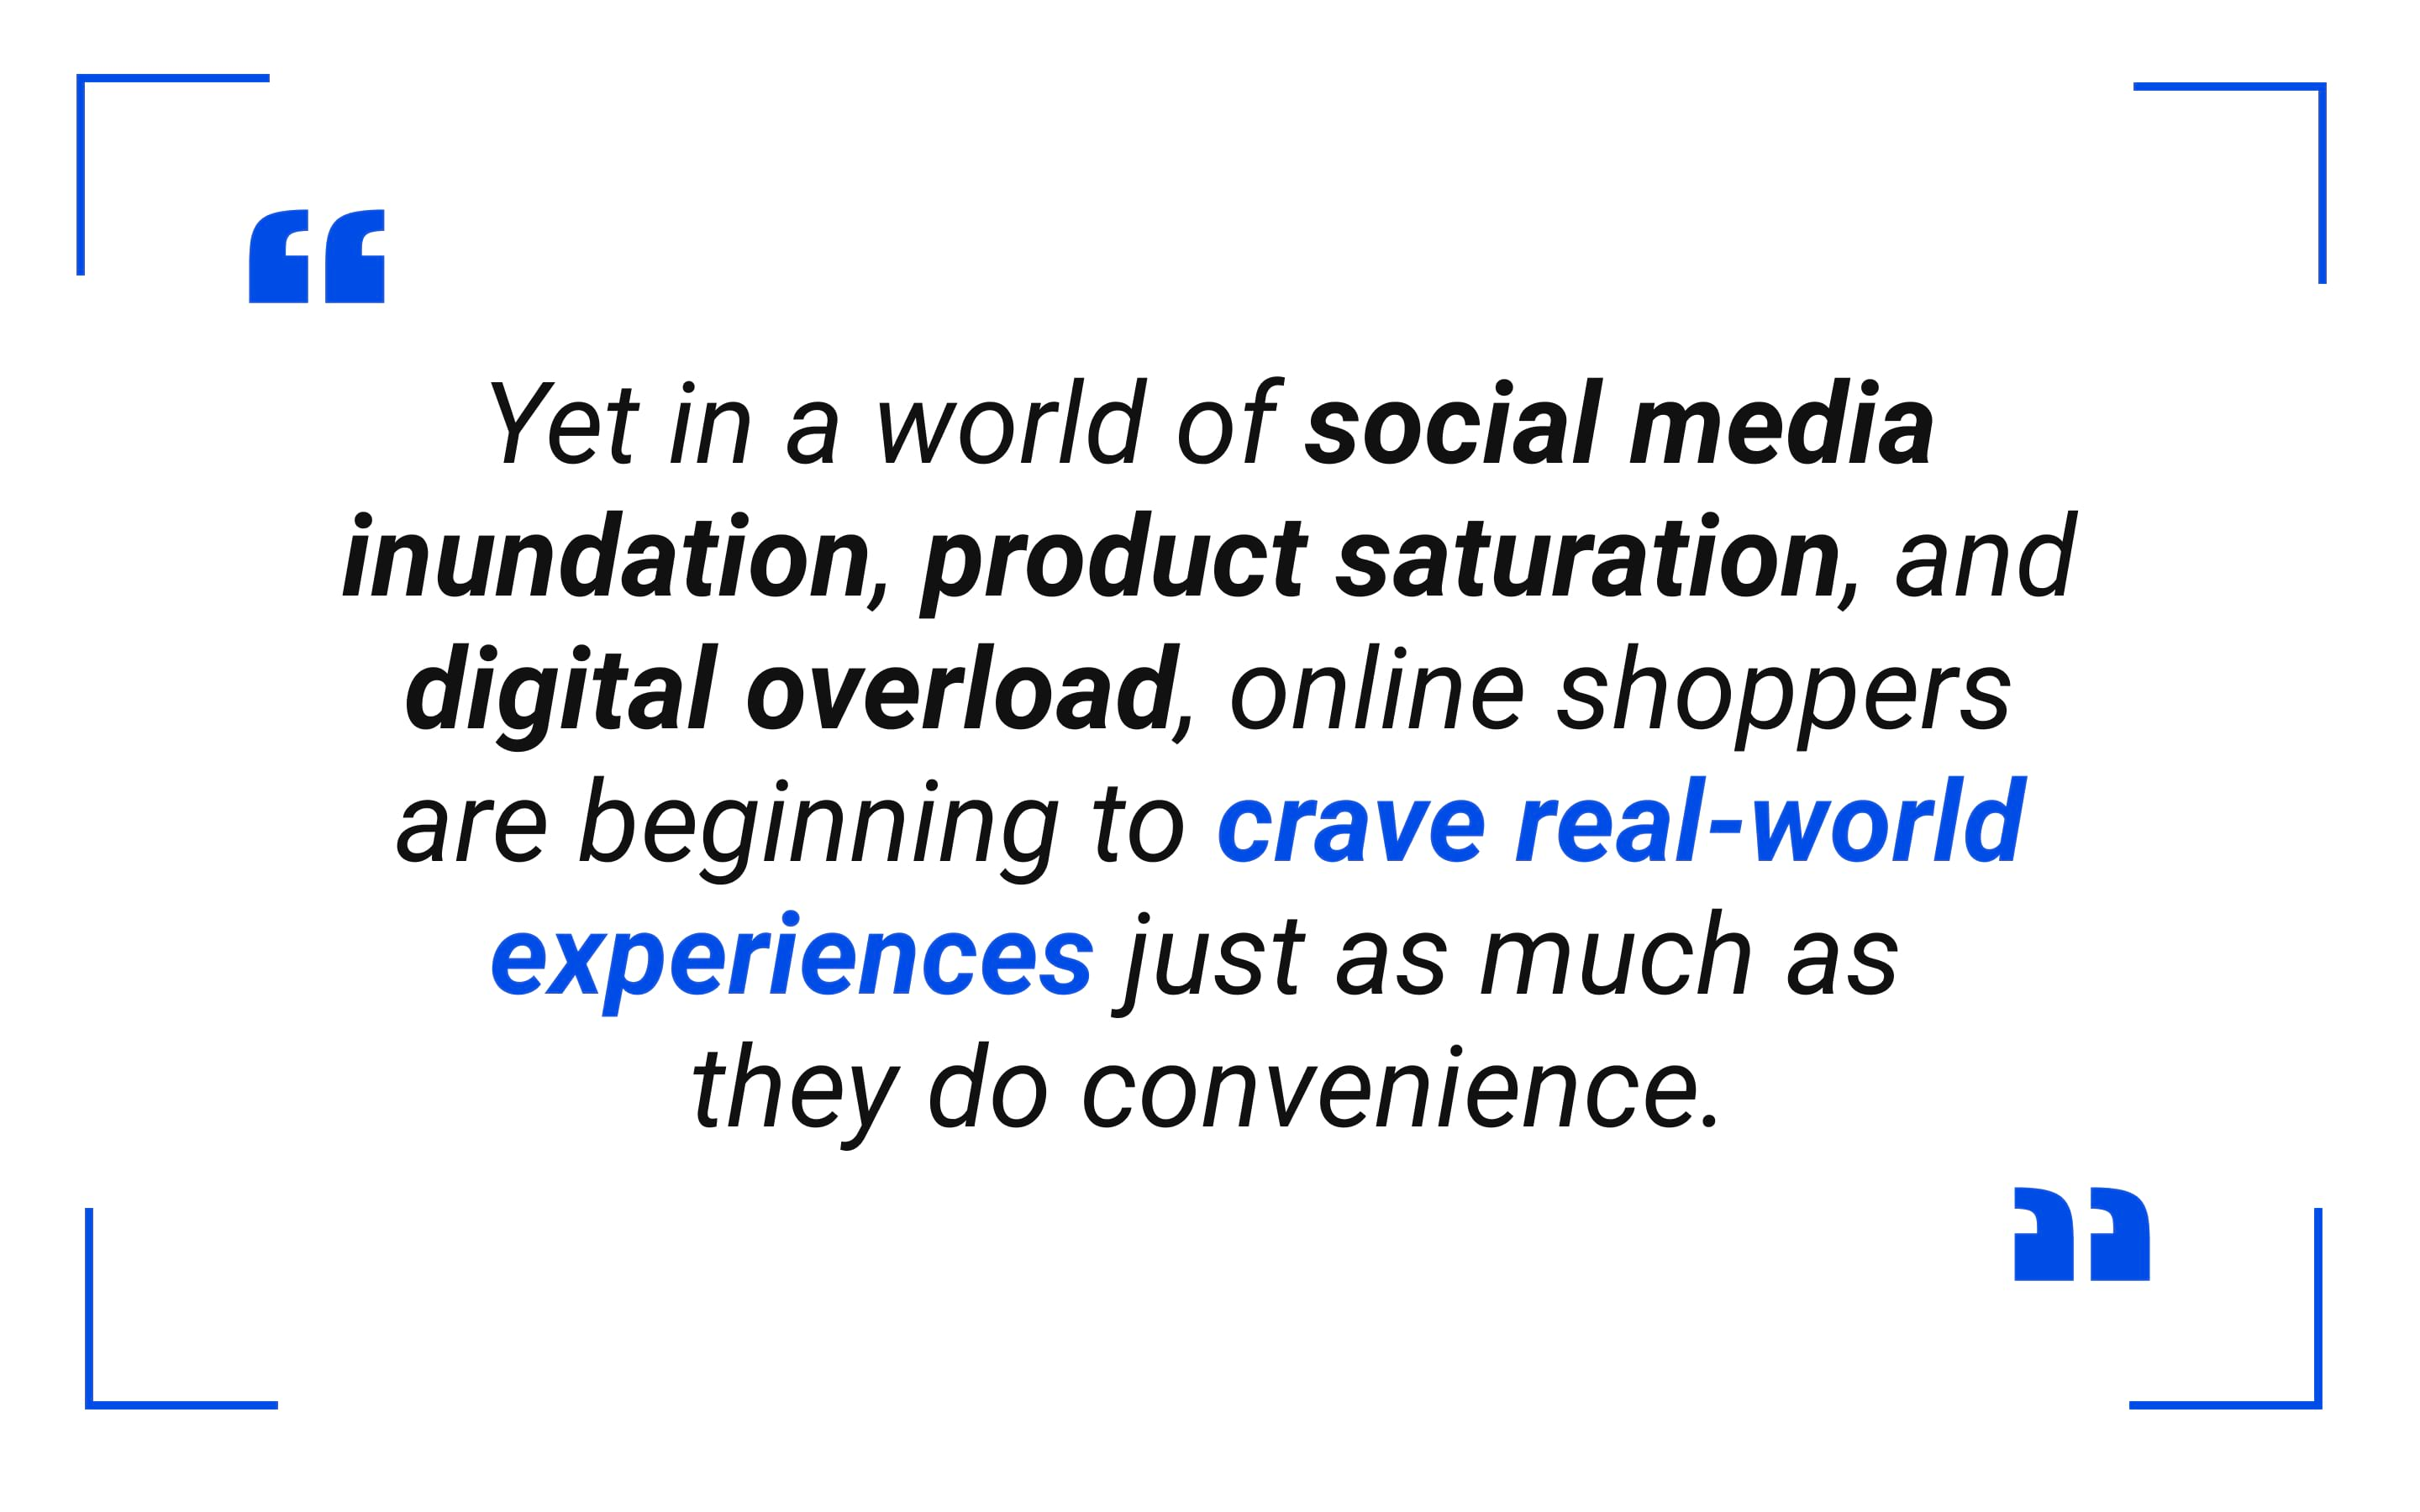 Online shoppers are beginning to crave real-world experiences